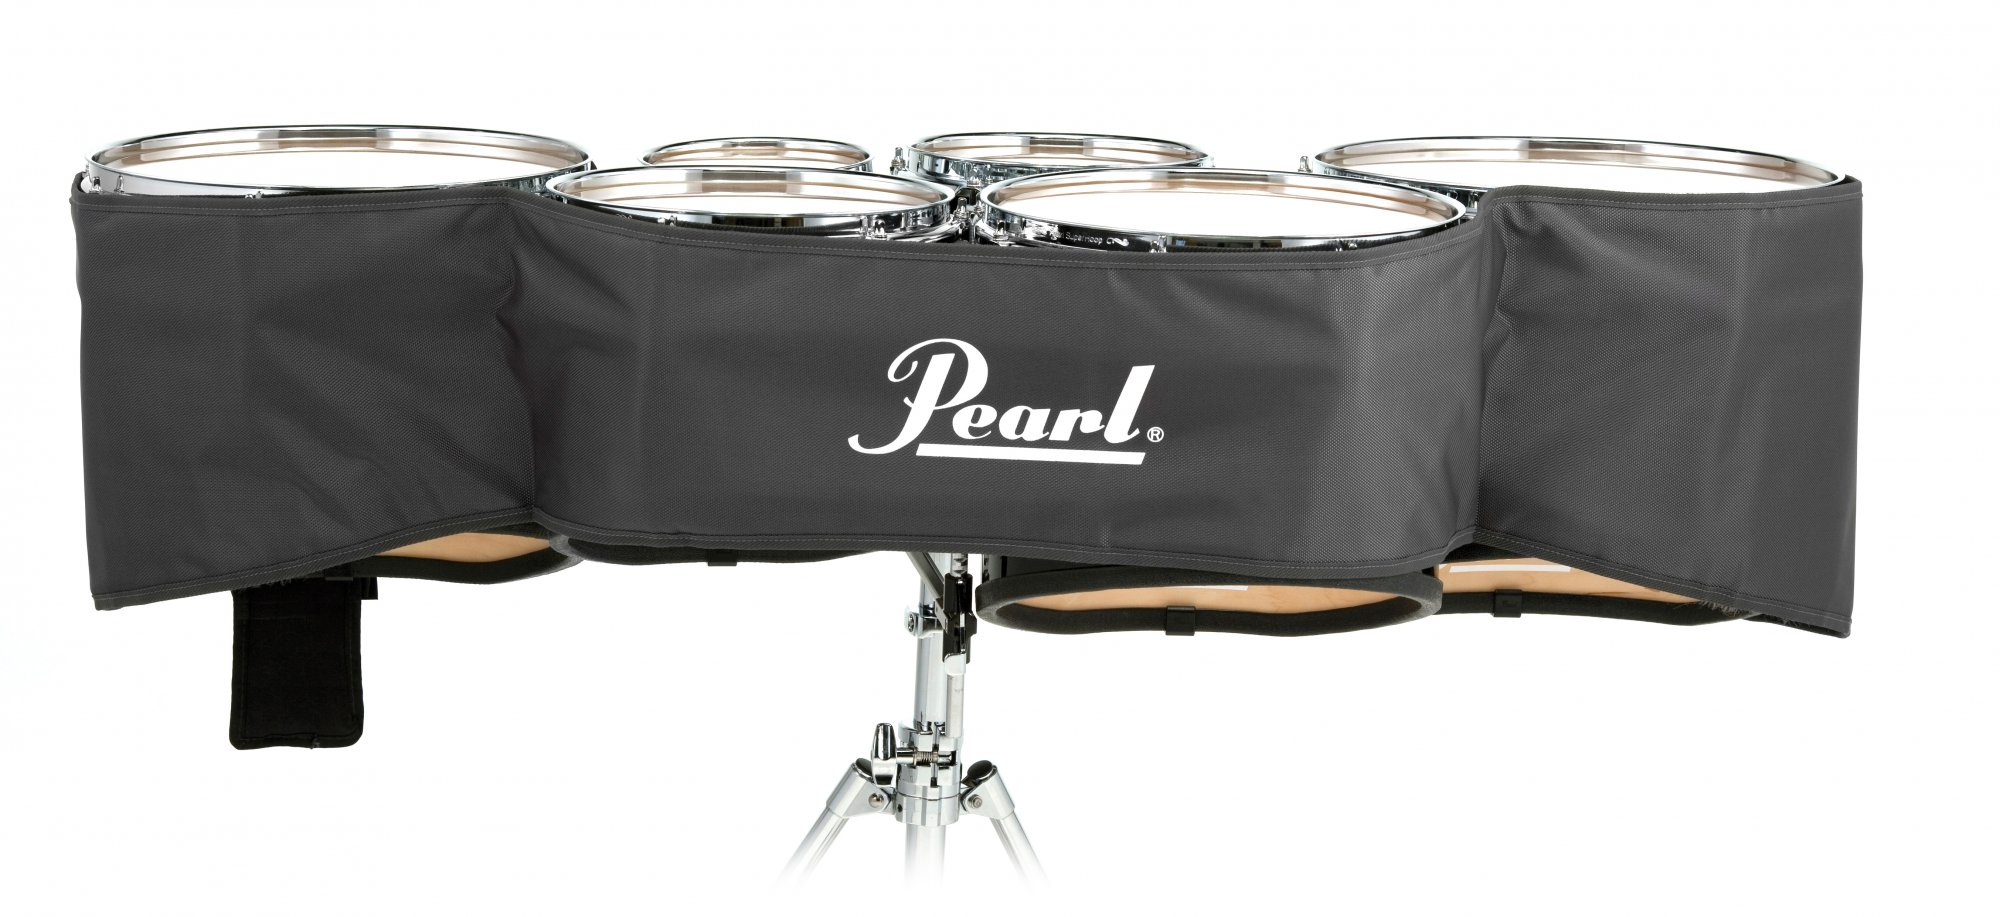 Pearl Marching Tenor Drums Cover